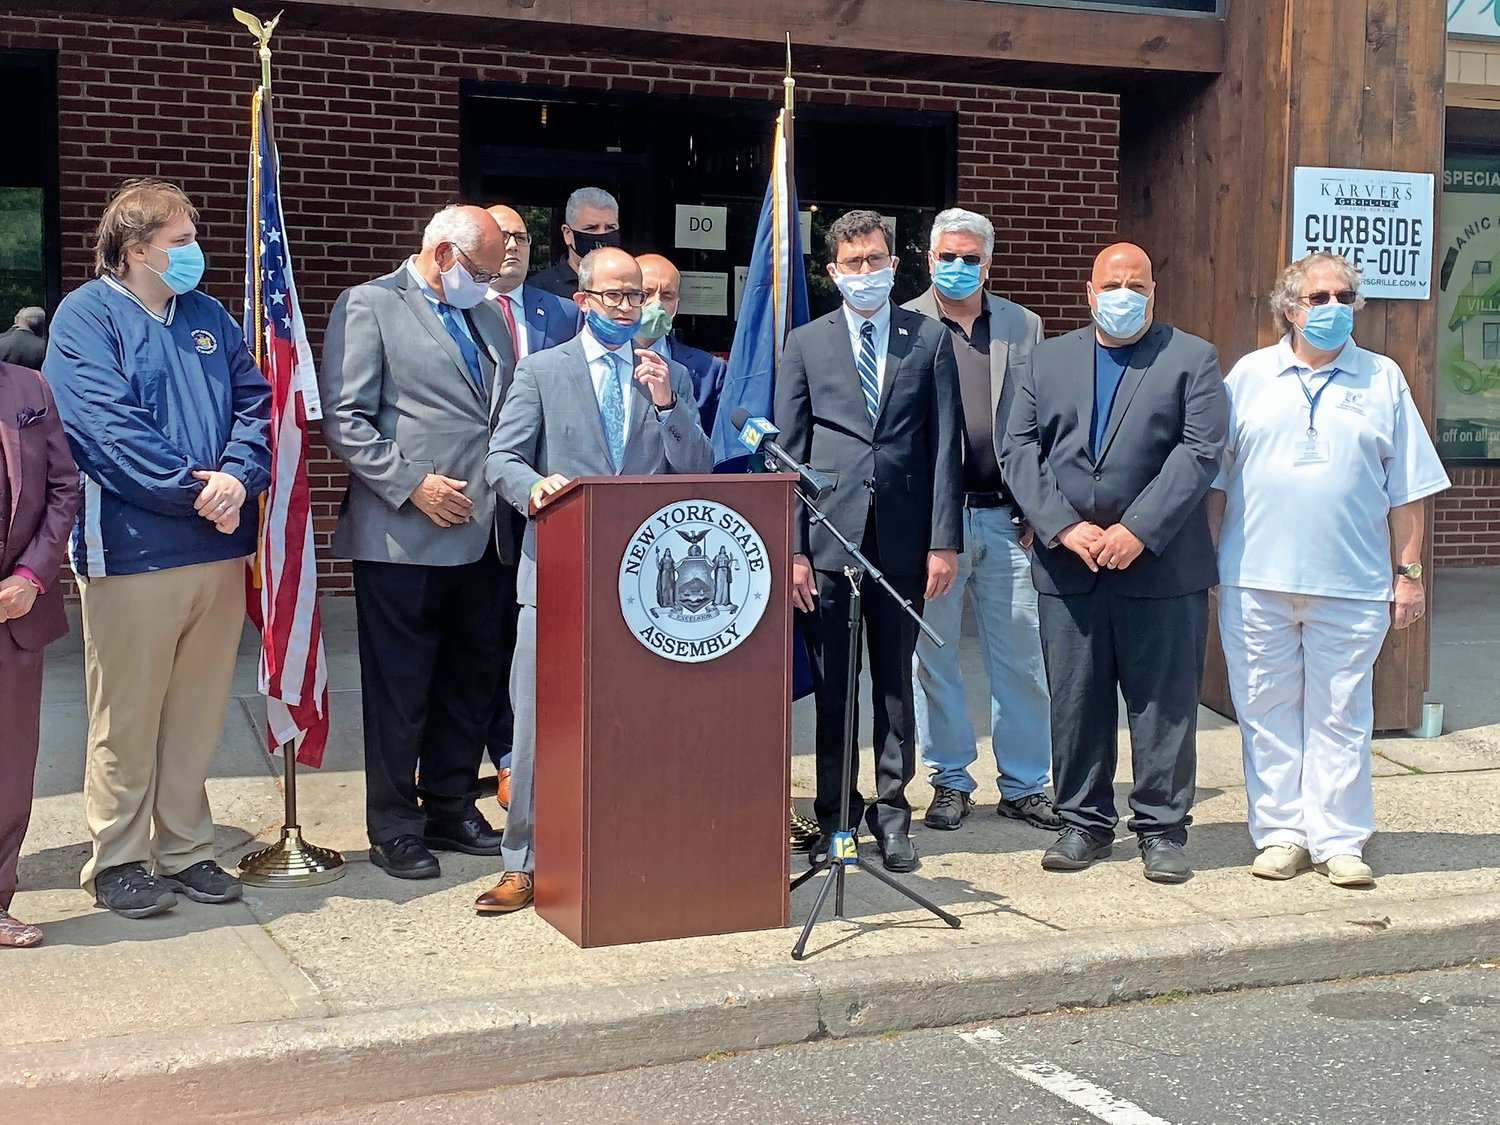 Assemblyman Ed Ra, at the lectern, proposed legislation allowing business owners to get marketing grants from the state. He spoke about it at a news conference on June 3.